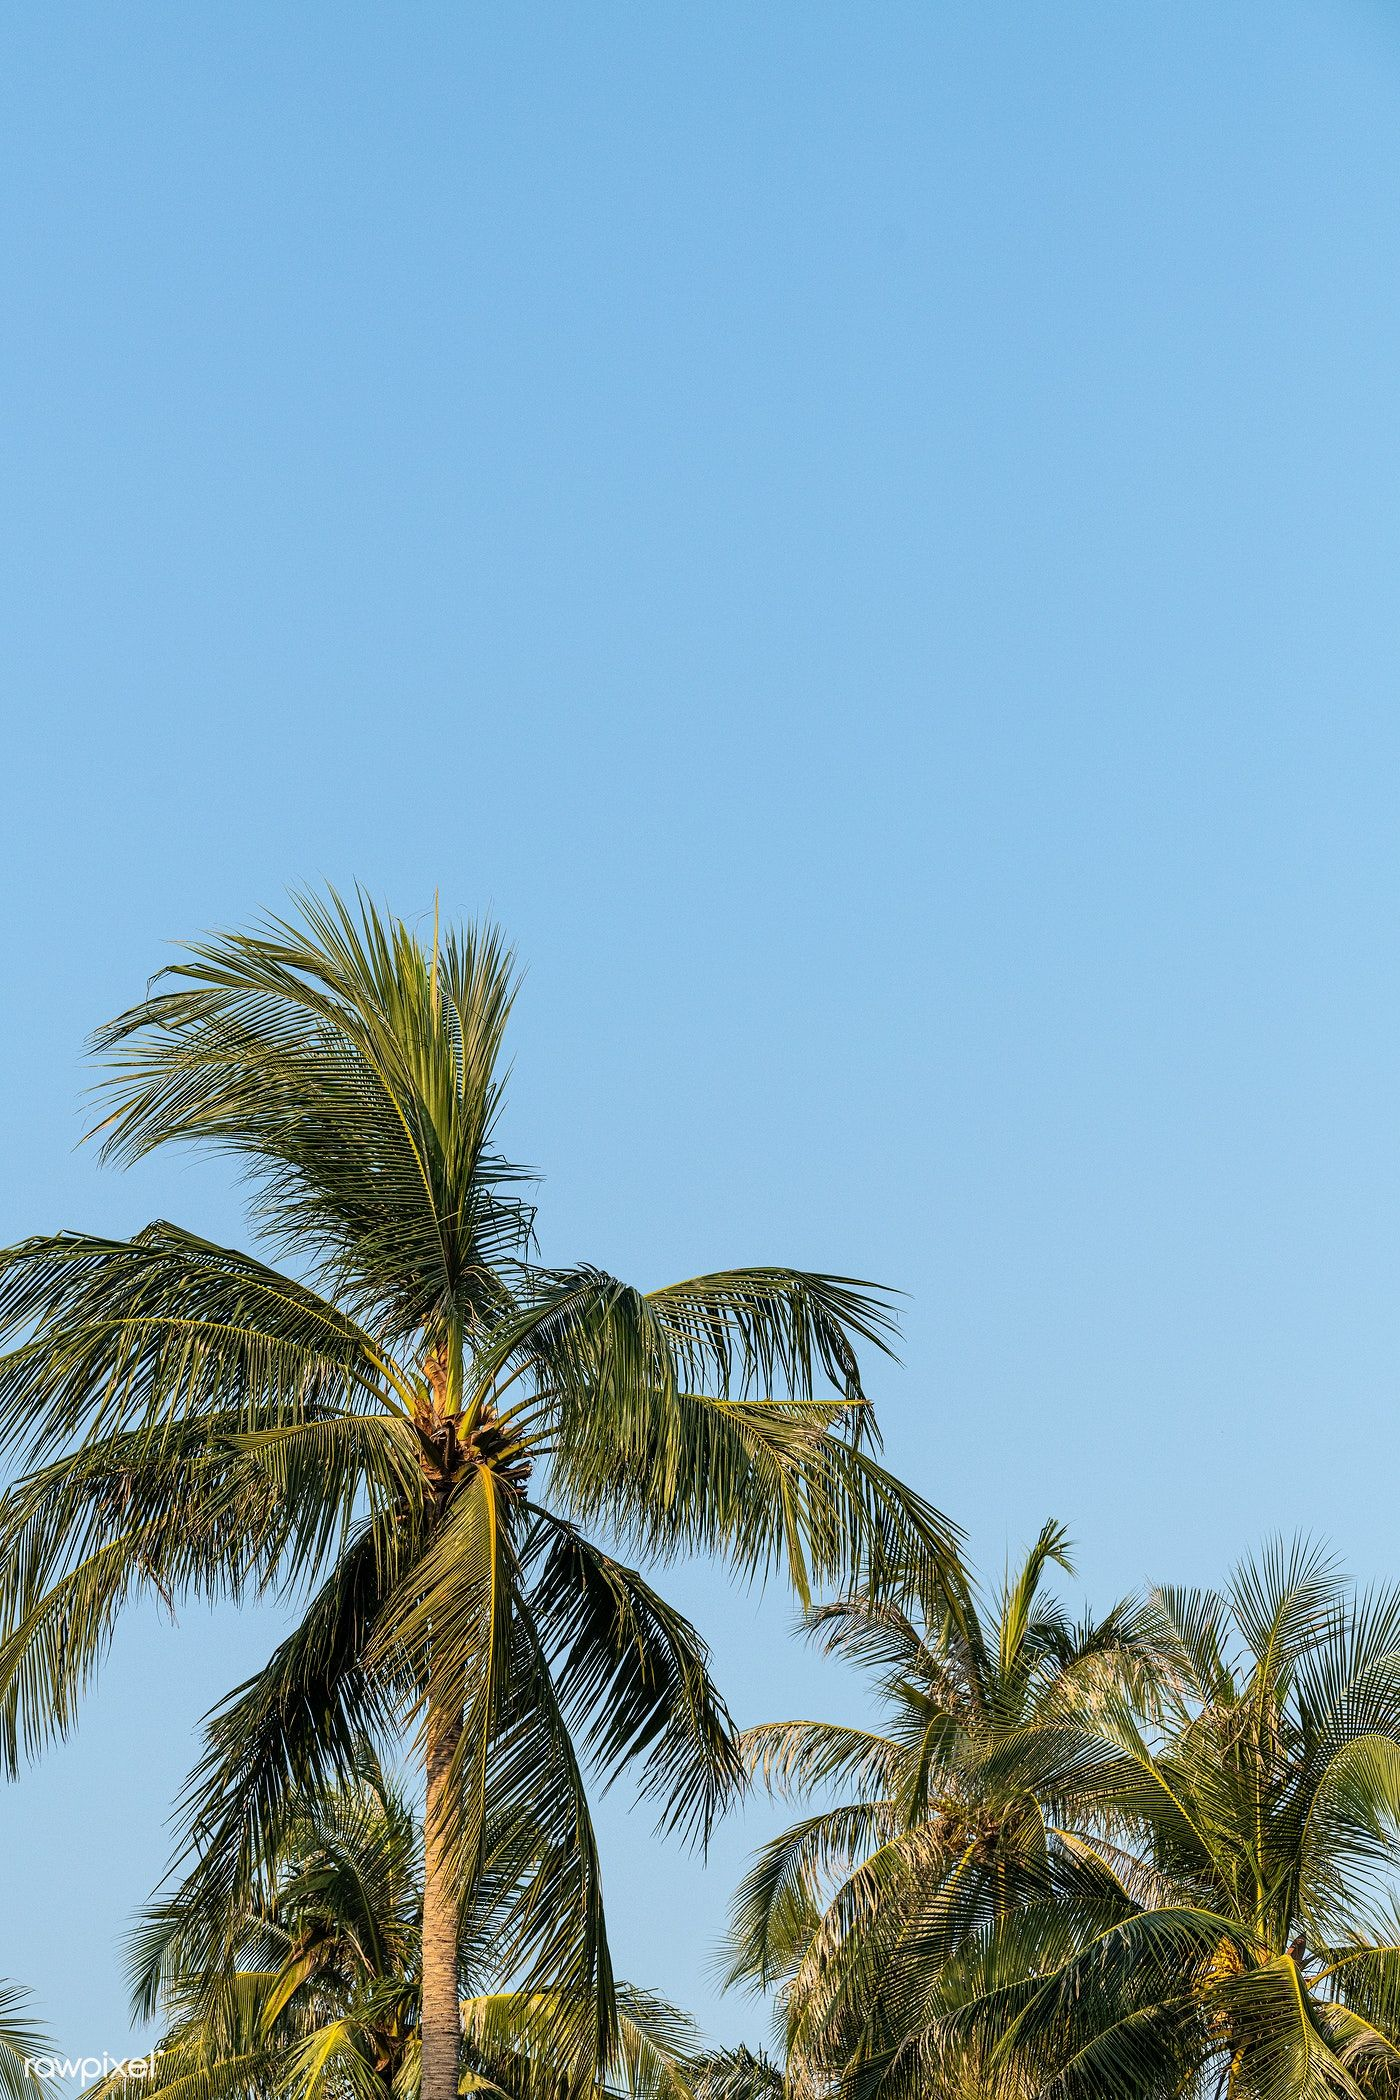 Download Premium Image Of Coconut Palm Trees On Blue Sky Background 2263435 Blue Sky Background Palm Tree Background Palm Tree Photography Wallpaper palm trees on blue sky